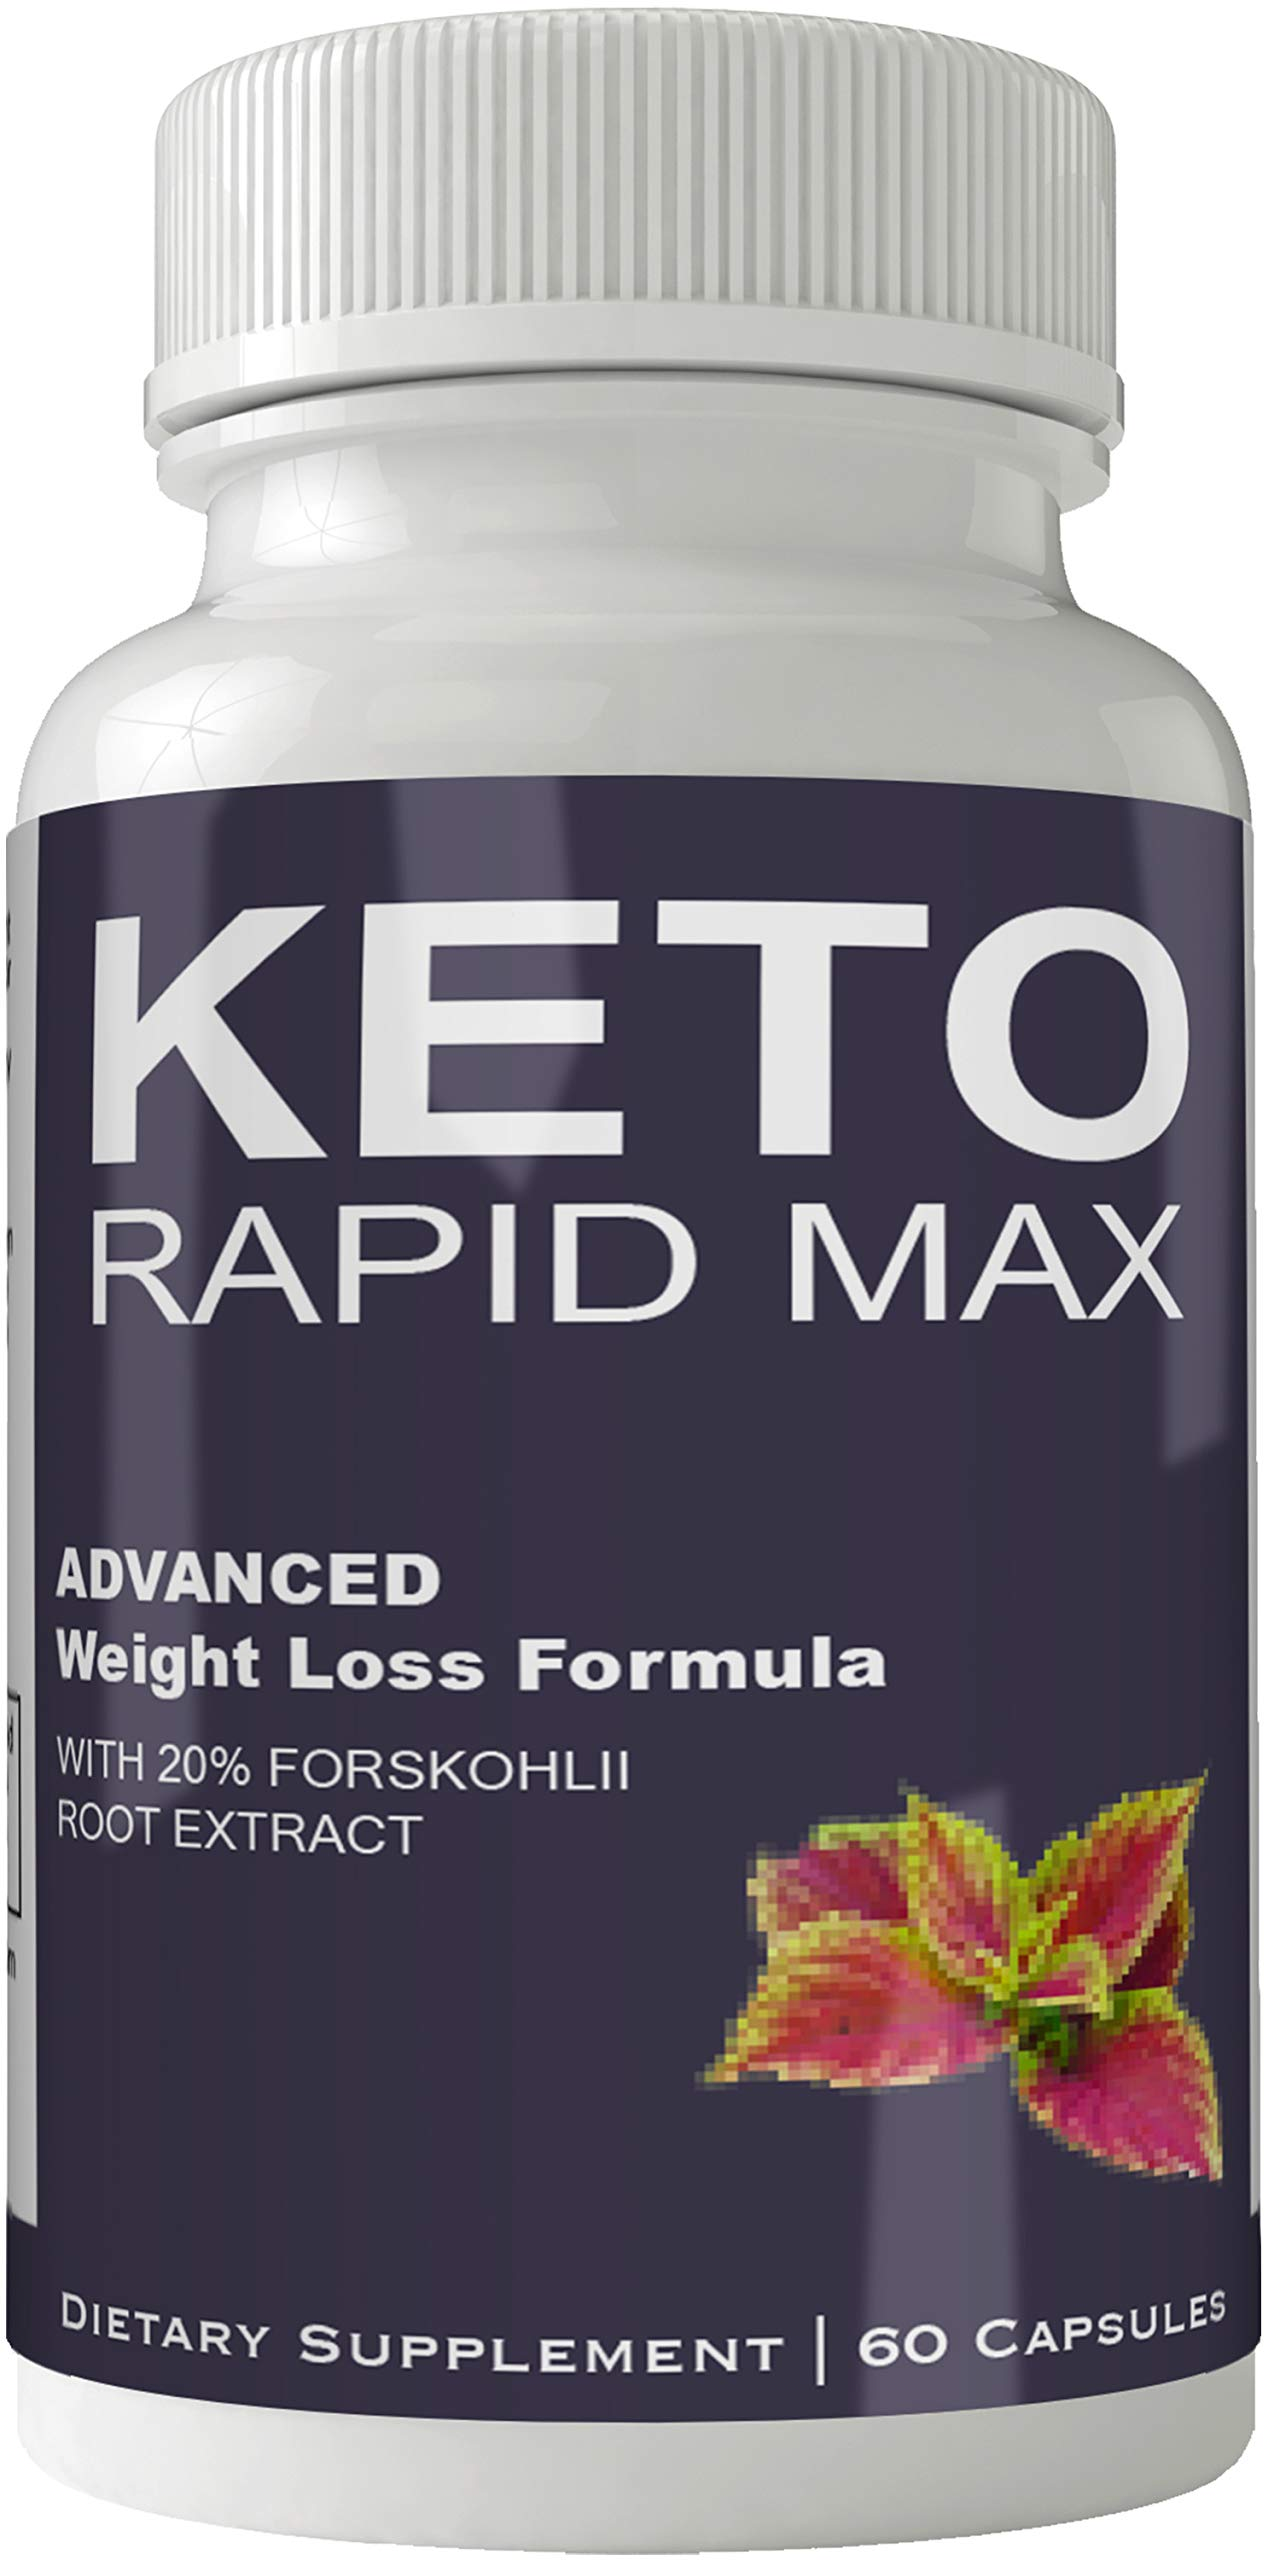 Keto Rapid Max Forskolin for Weight Loss Supplement Pills Ultra Formula with 250mg High Quality Natural Forskolii Extract Appetite Suppressant Tablets Boost Metabolism by nutra4health LLC (Image #1)